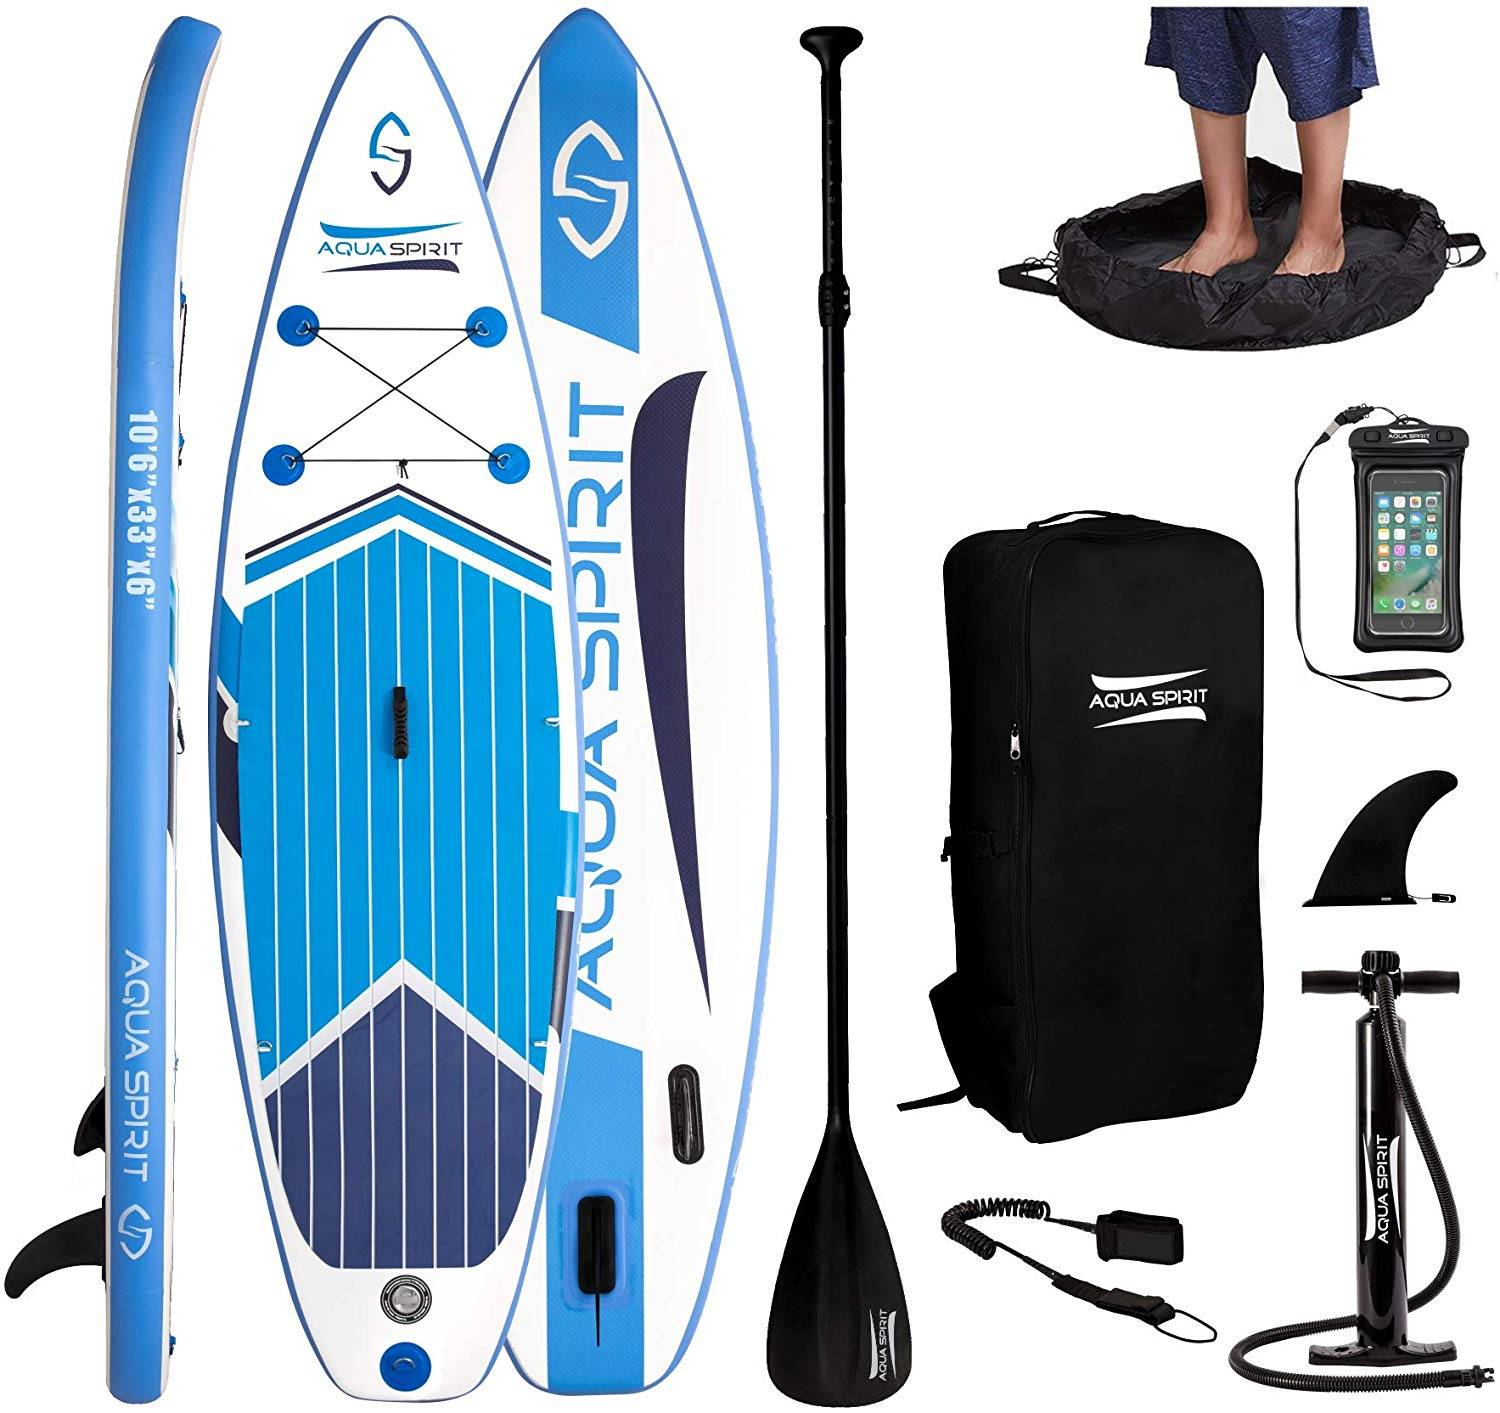 AQUA SPIRIT All Skill Levels Paddle Board – Performance packed Option or all Activities